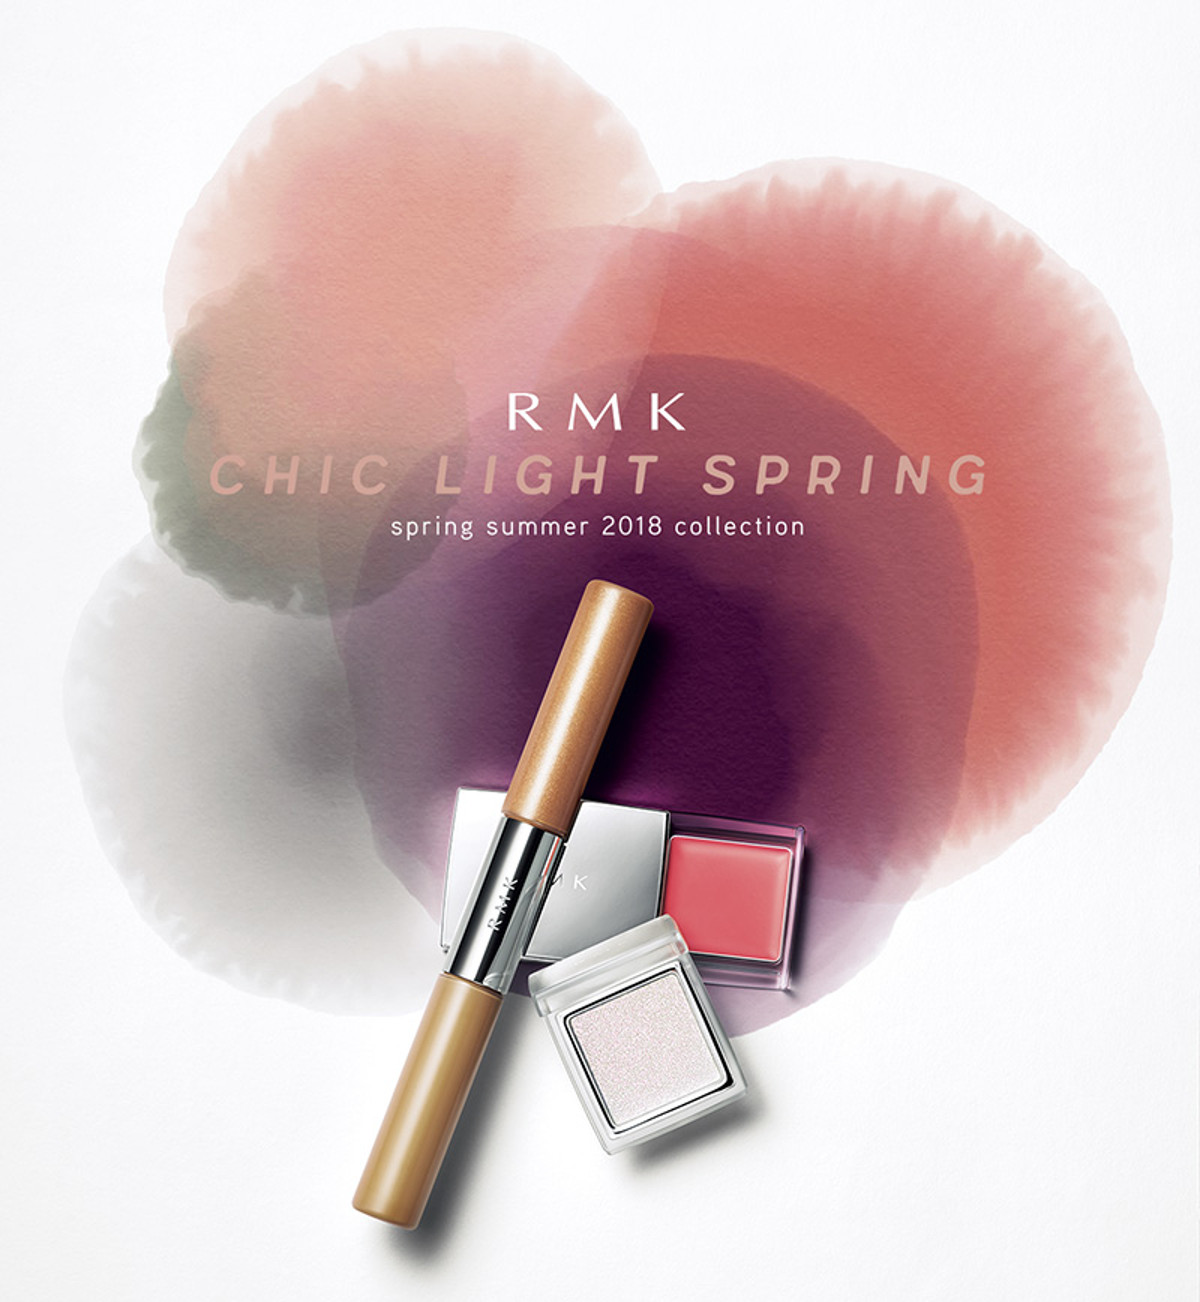 RMK 2018 Spring Summer Collection Chic Light Spring